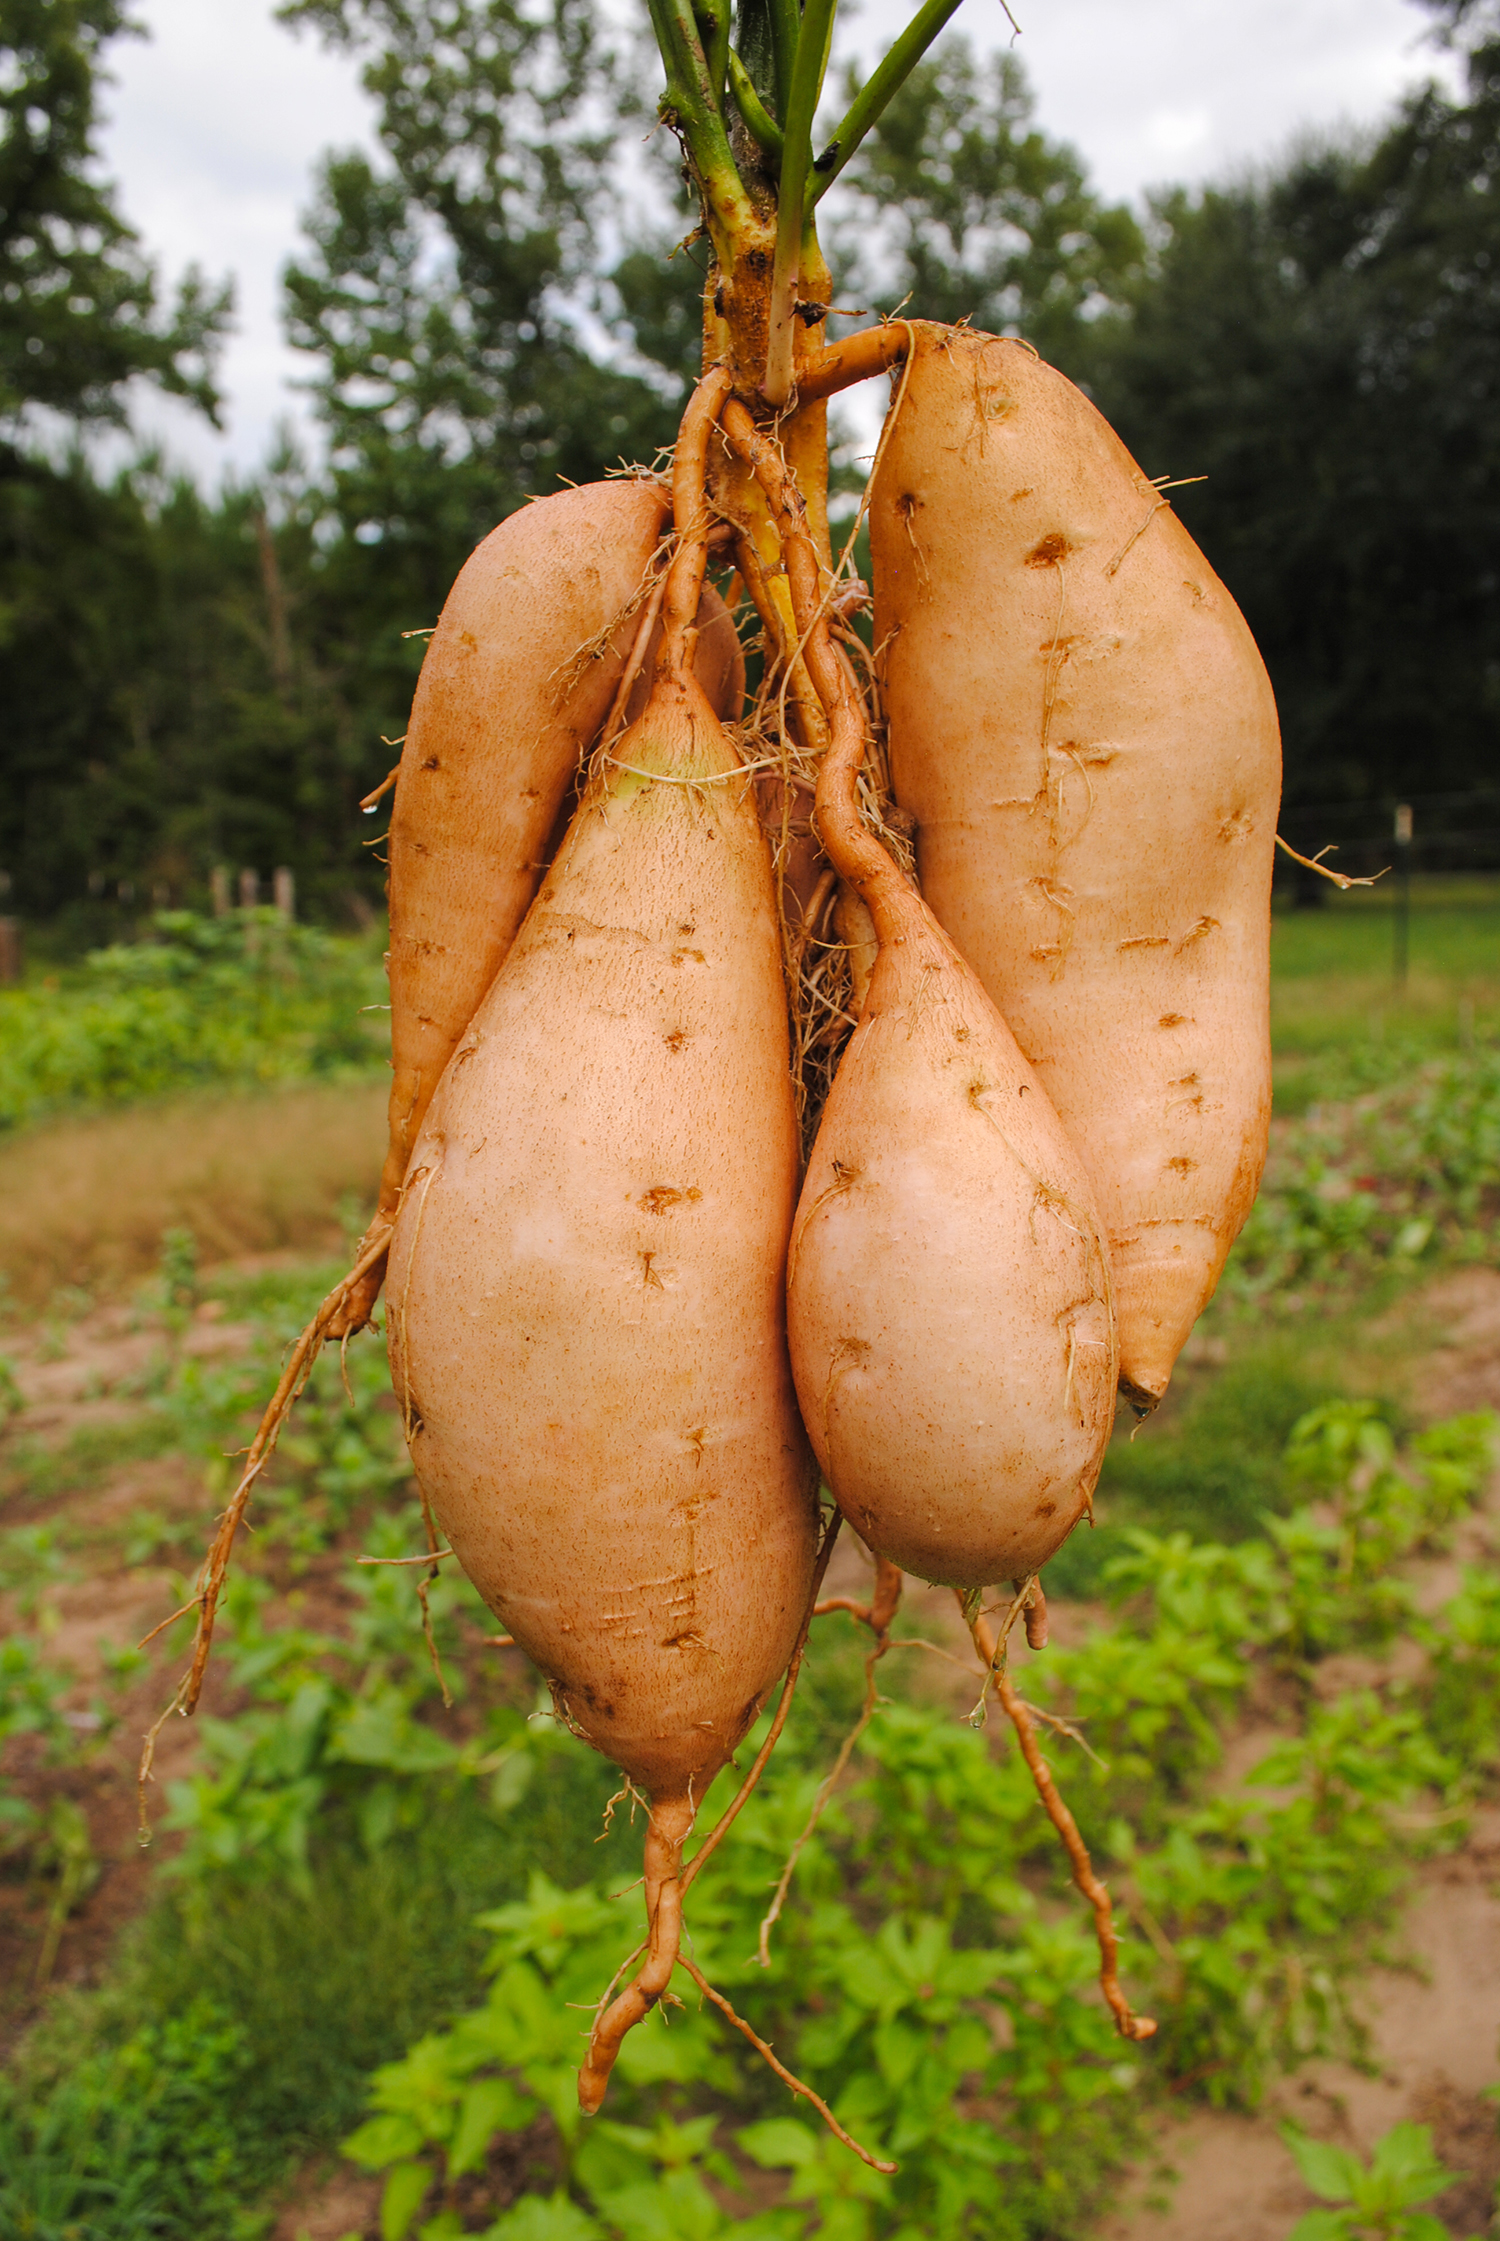 The swollen roots of 'O'Henry' sweet potato. Getting them out all still attached to the plant is an art in produce transportation.